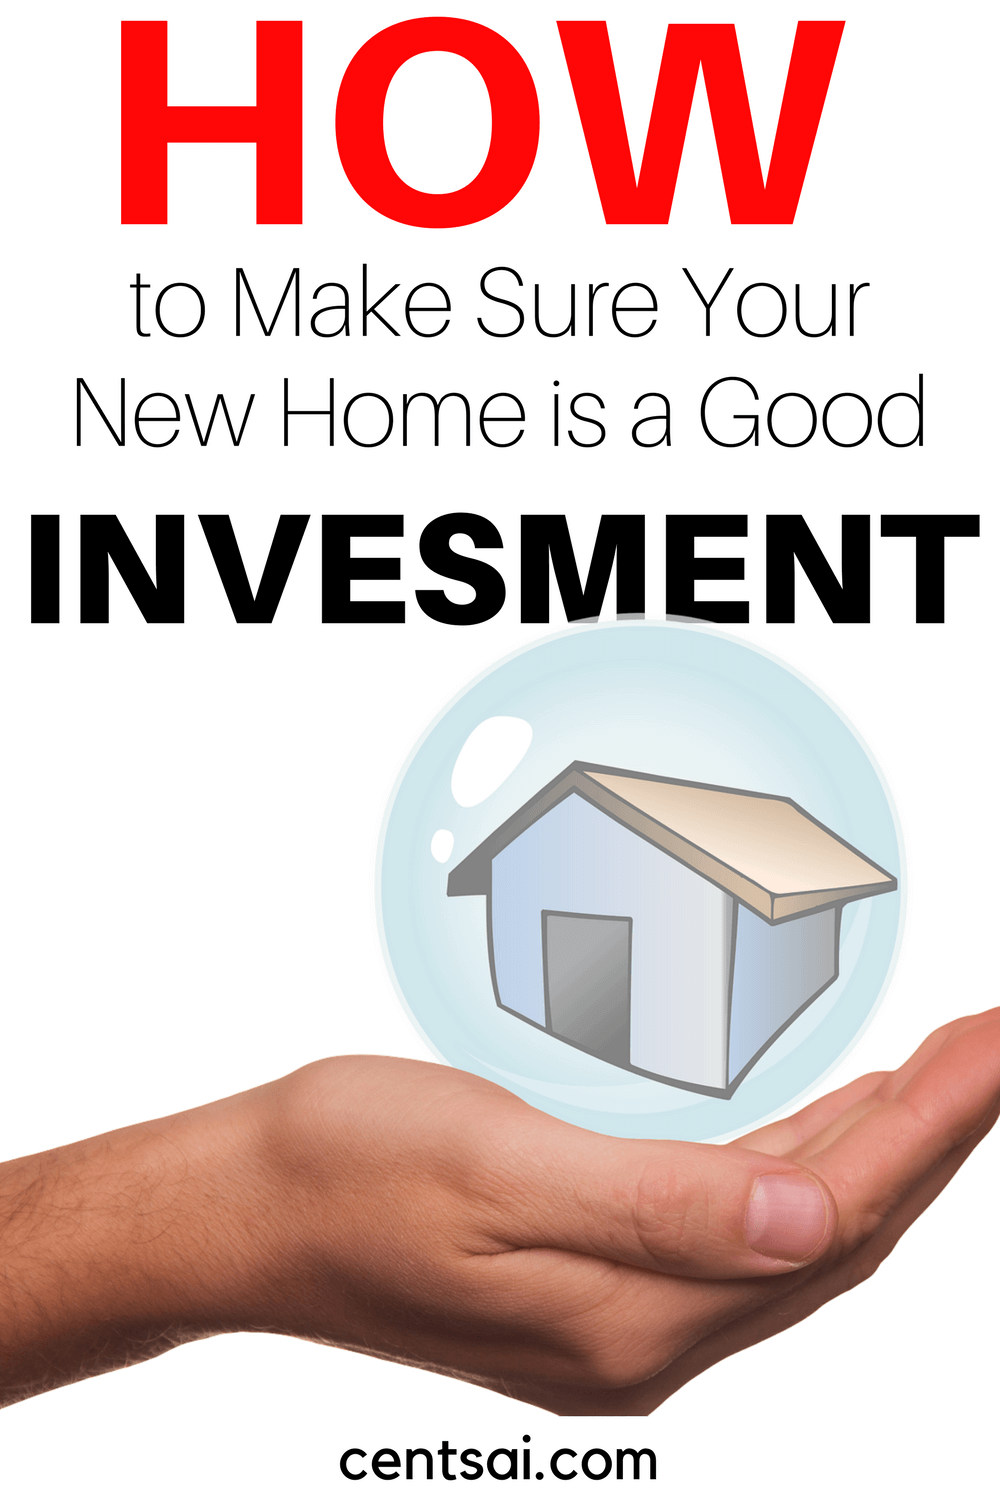 When looking to buy a new house, sometimes it's best to think of the new place as an investment first and a home second.